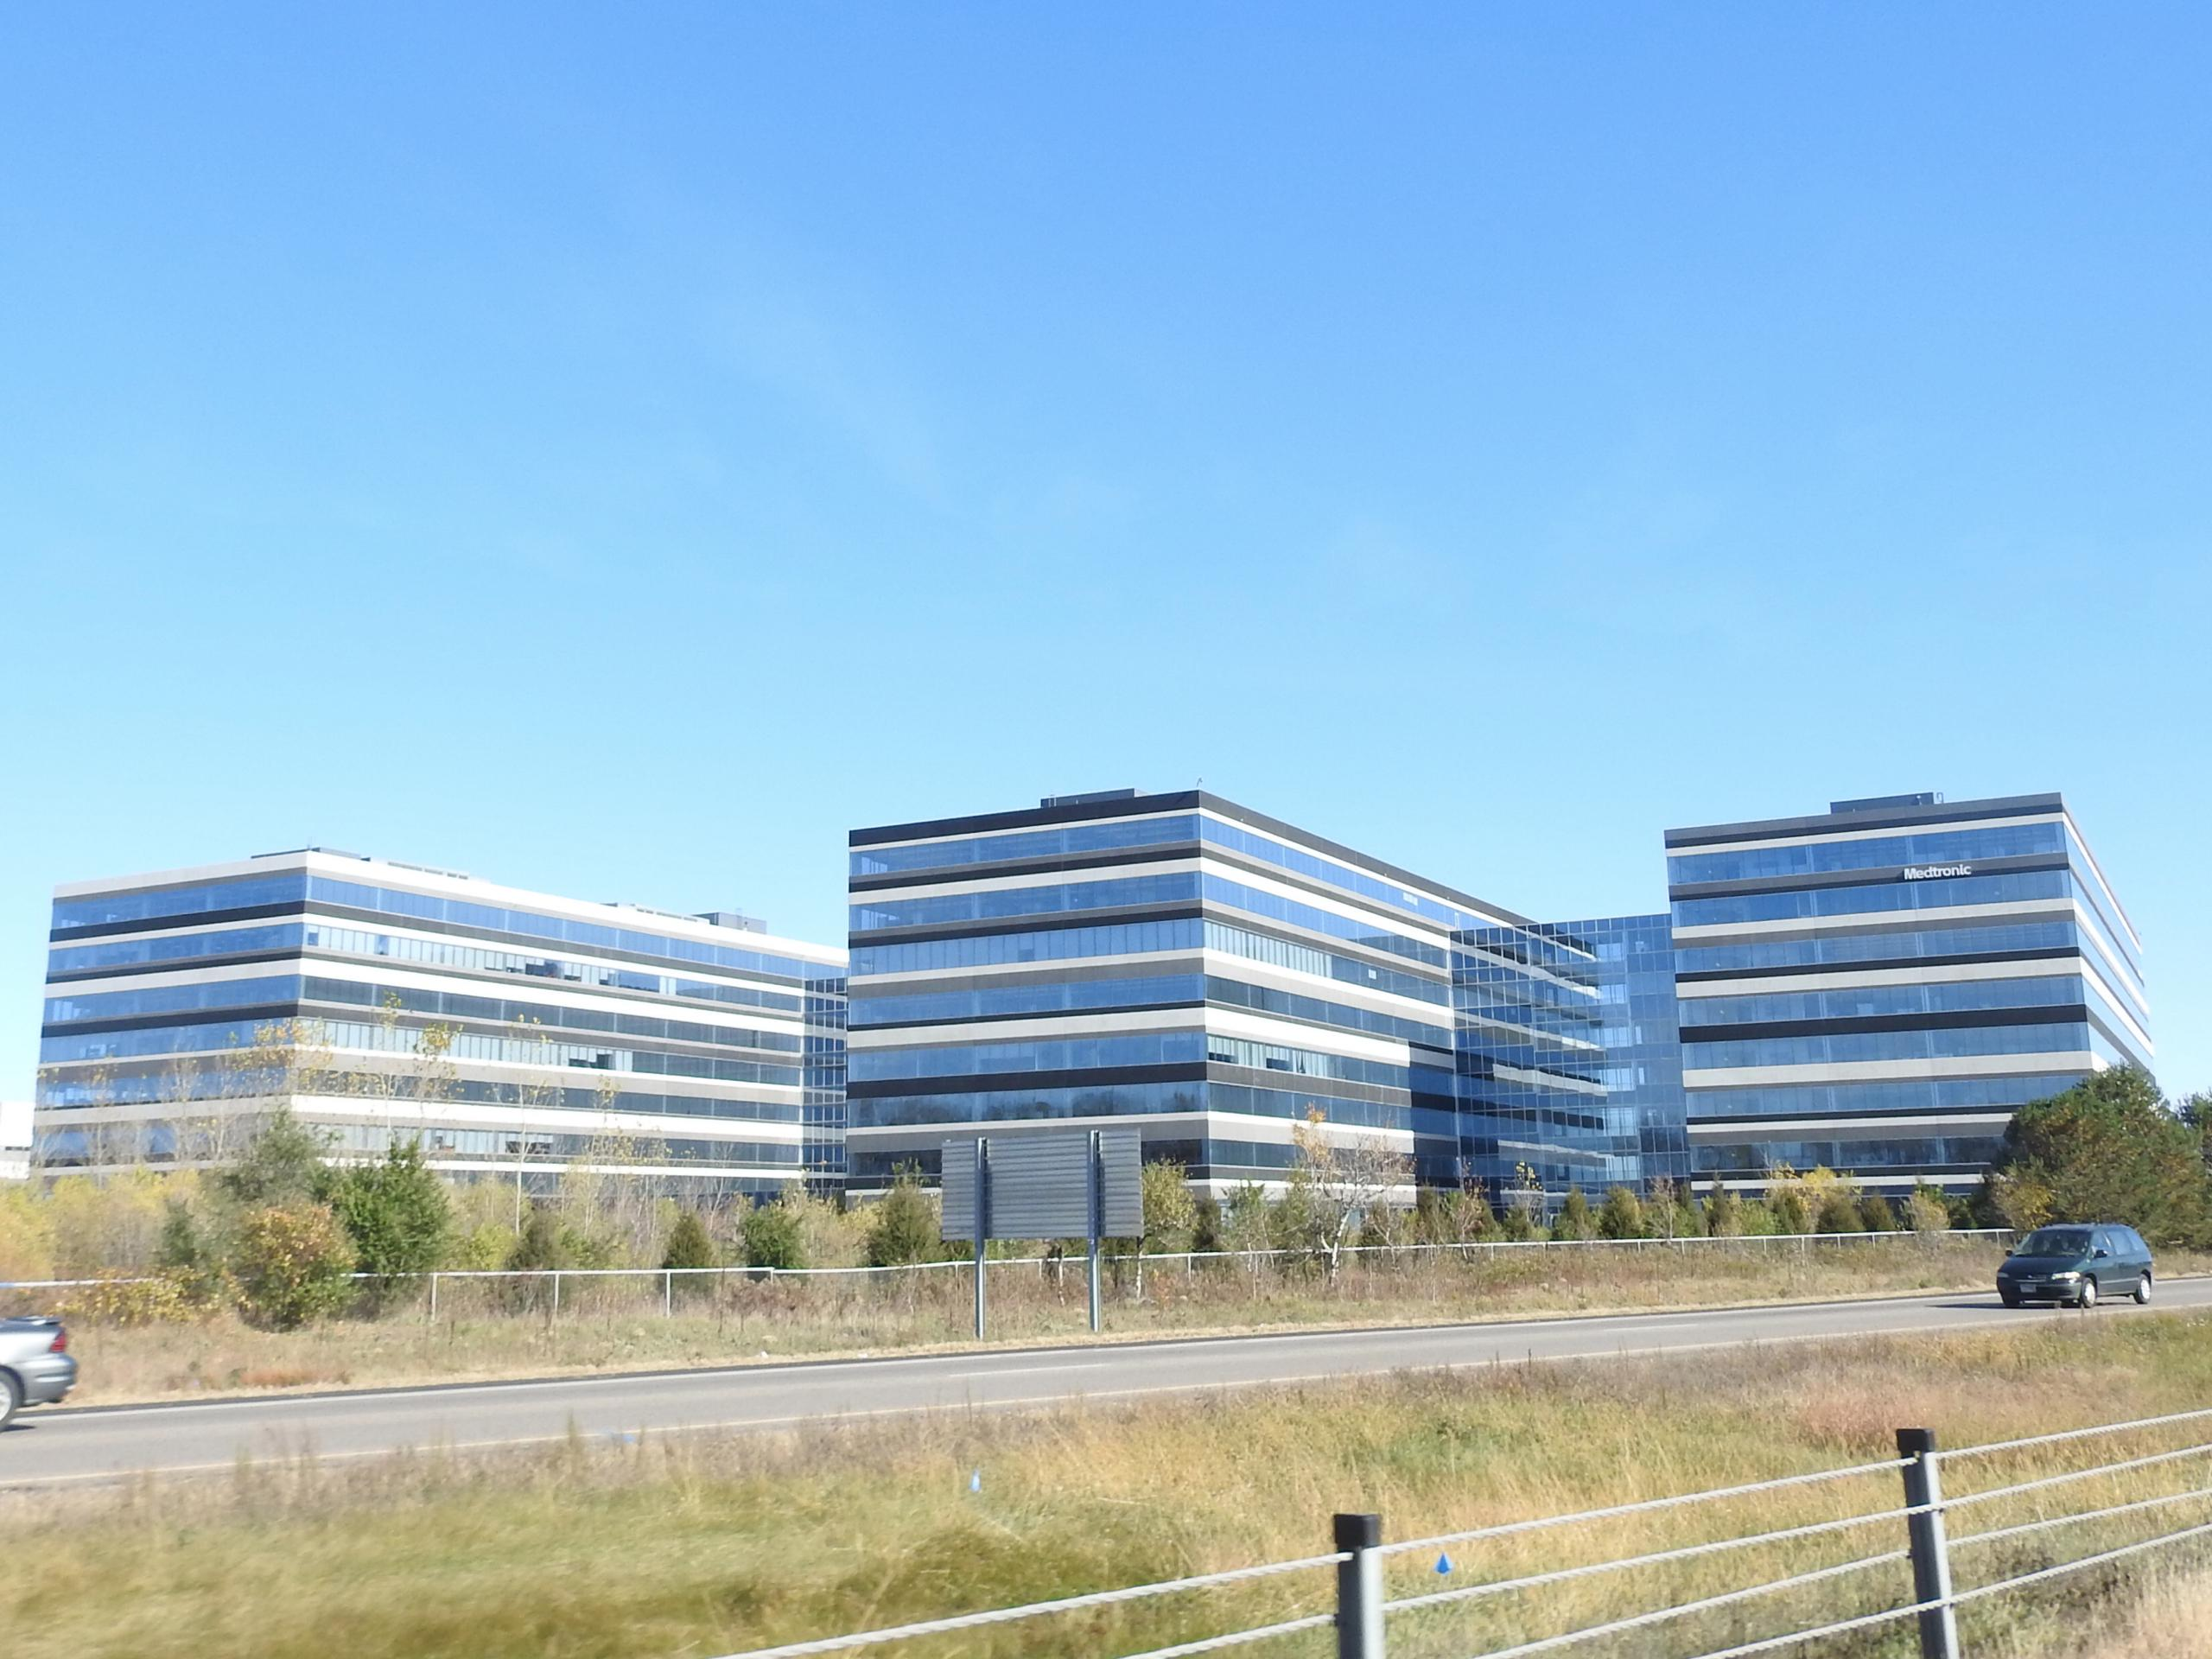 Medtronic campus in Mounds View, Minnesota.